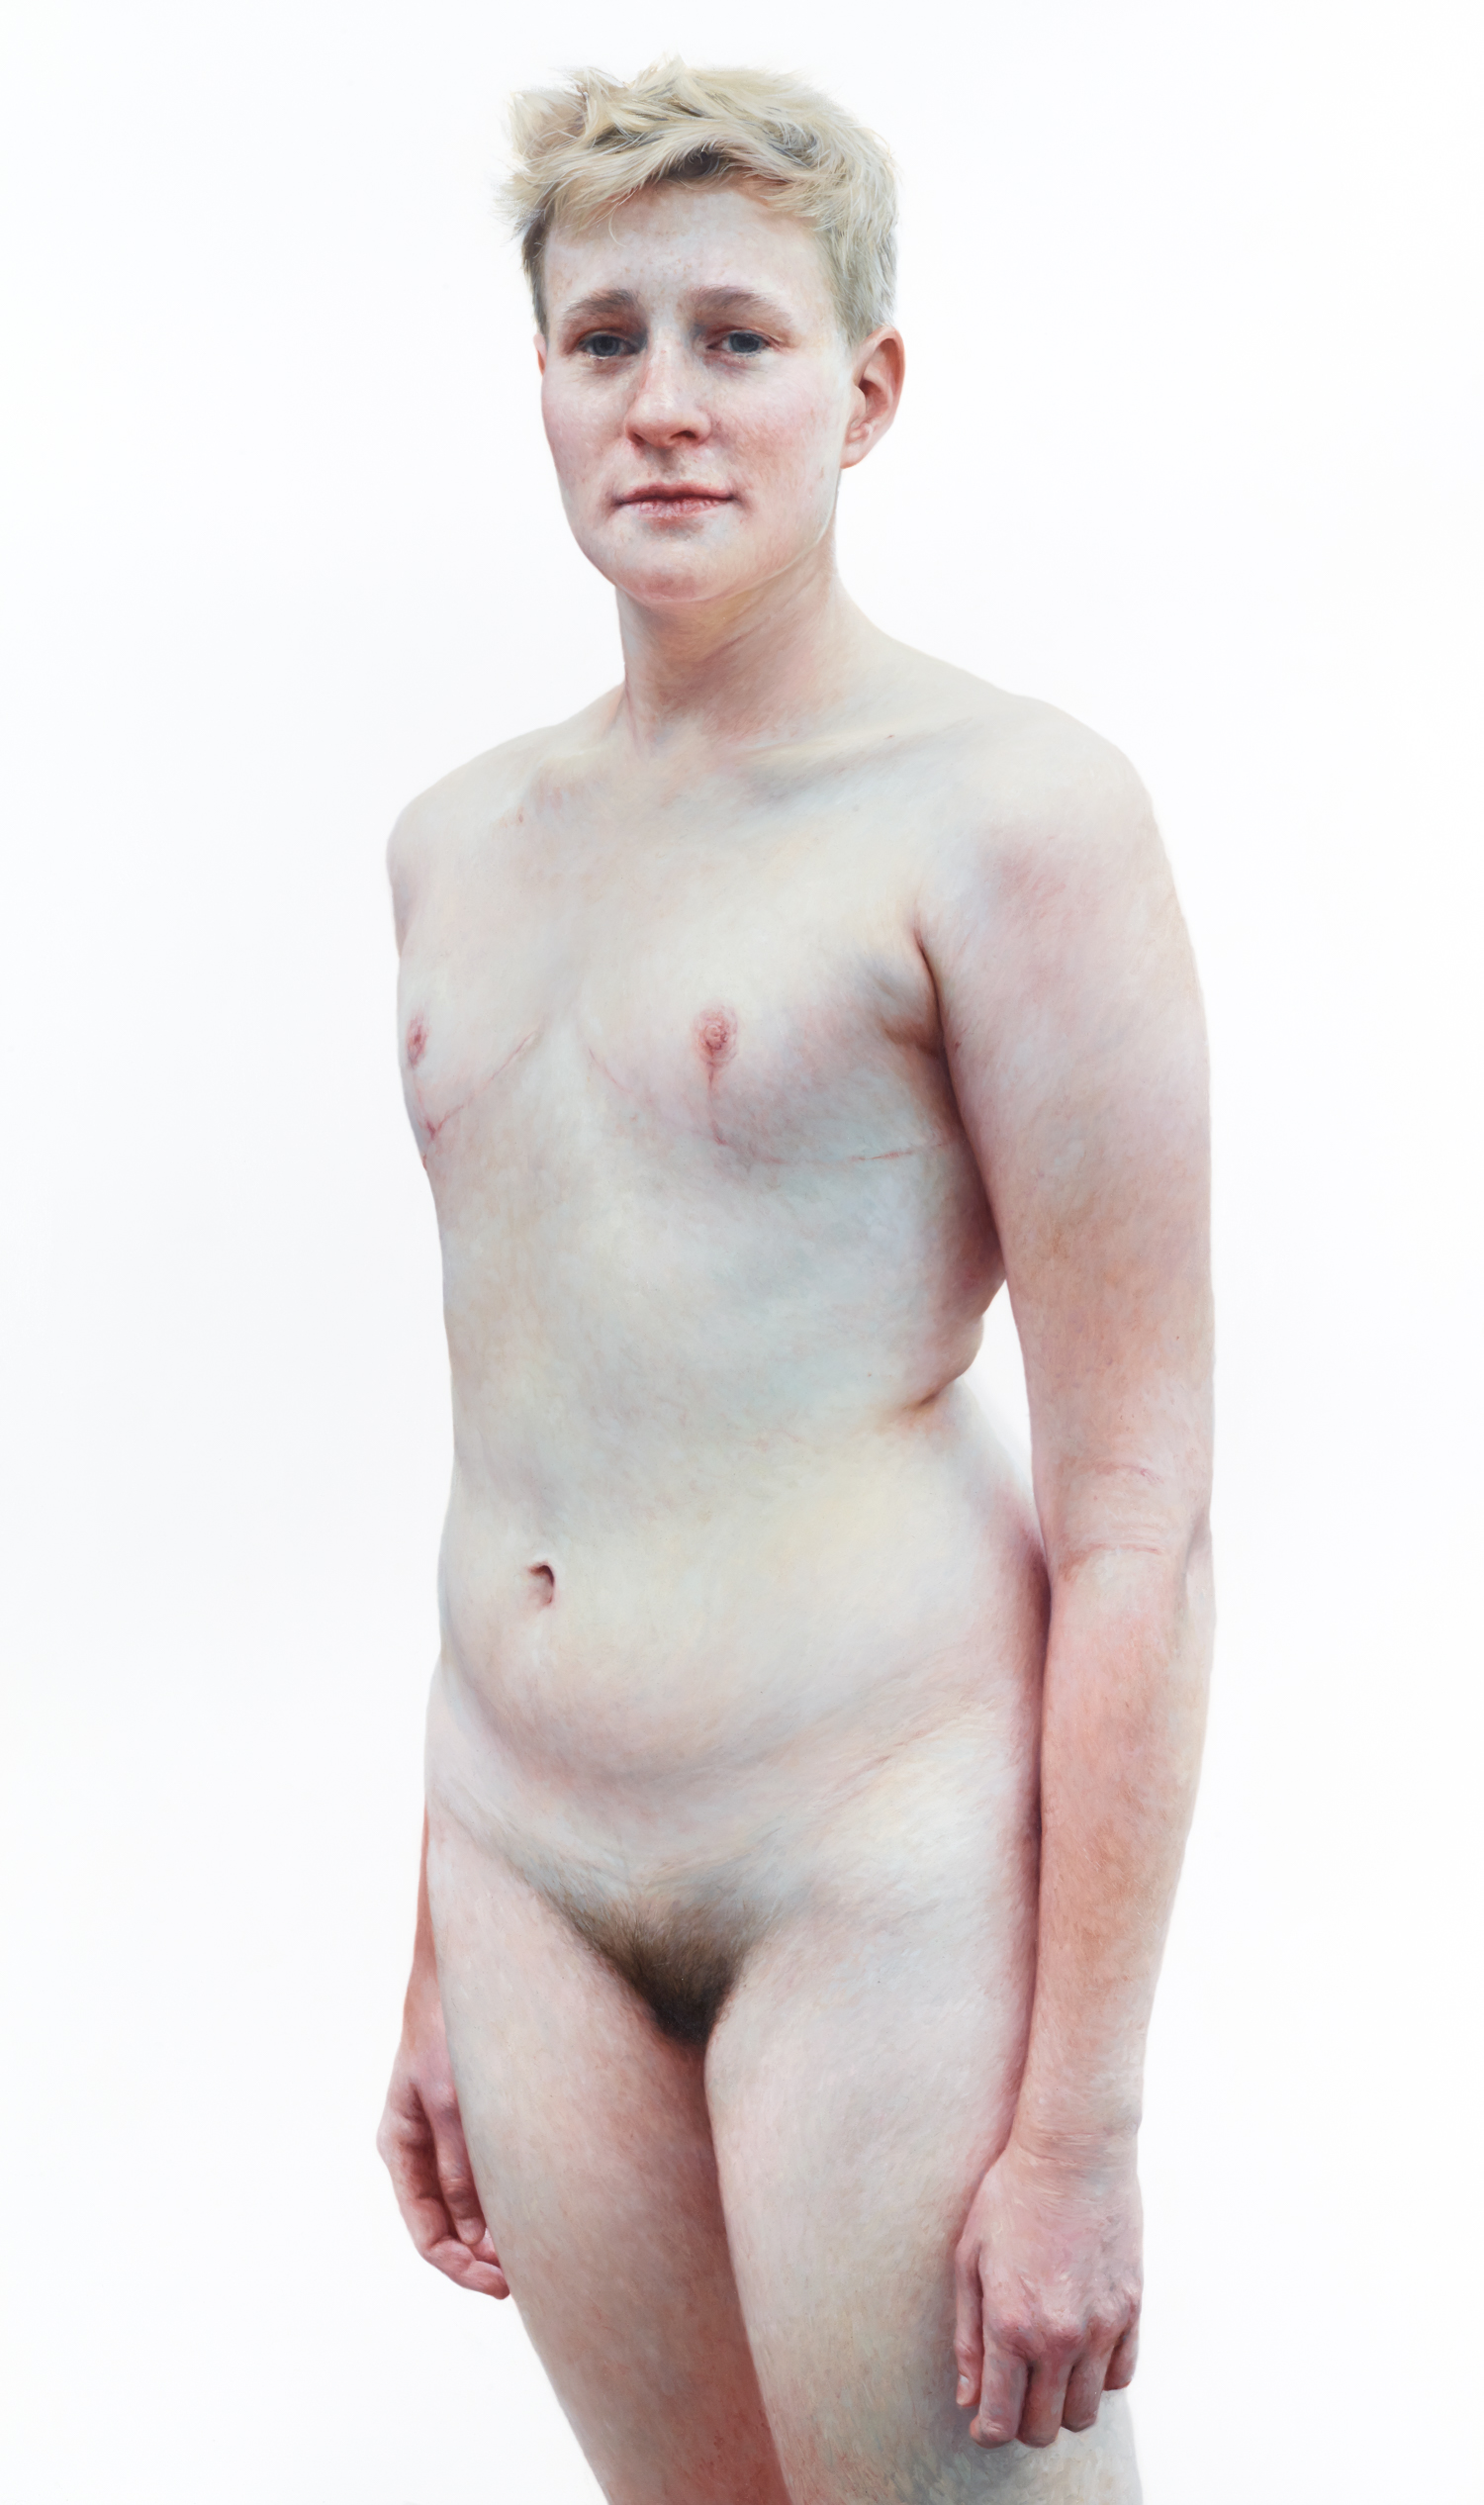 Honest Nudes Highlight the Beauty in Every Body